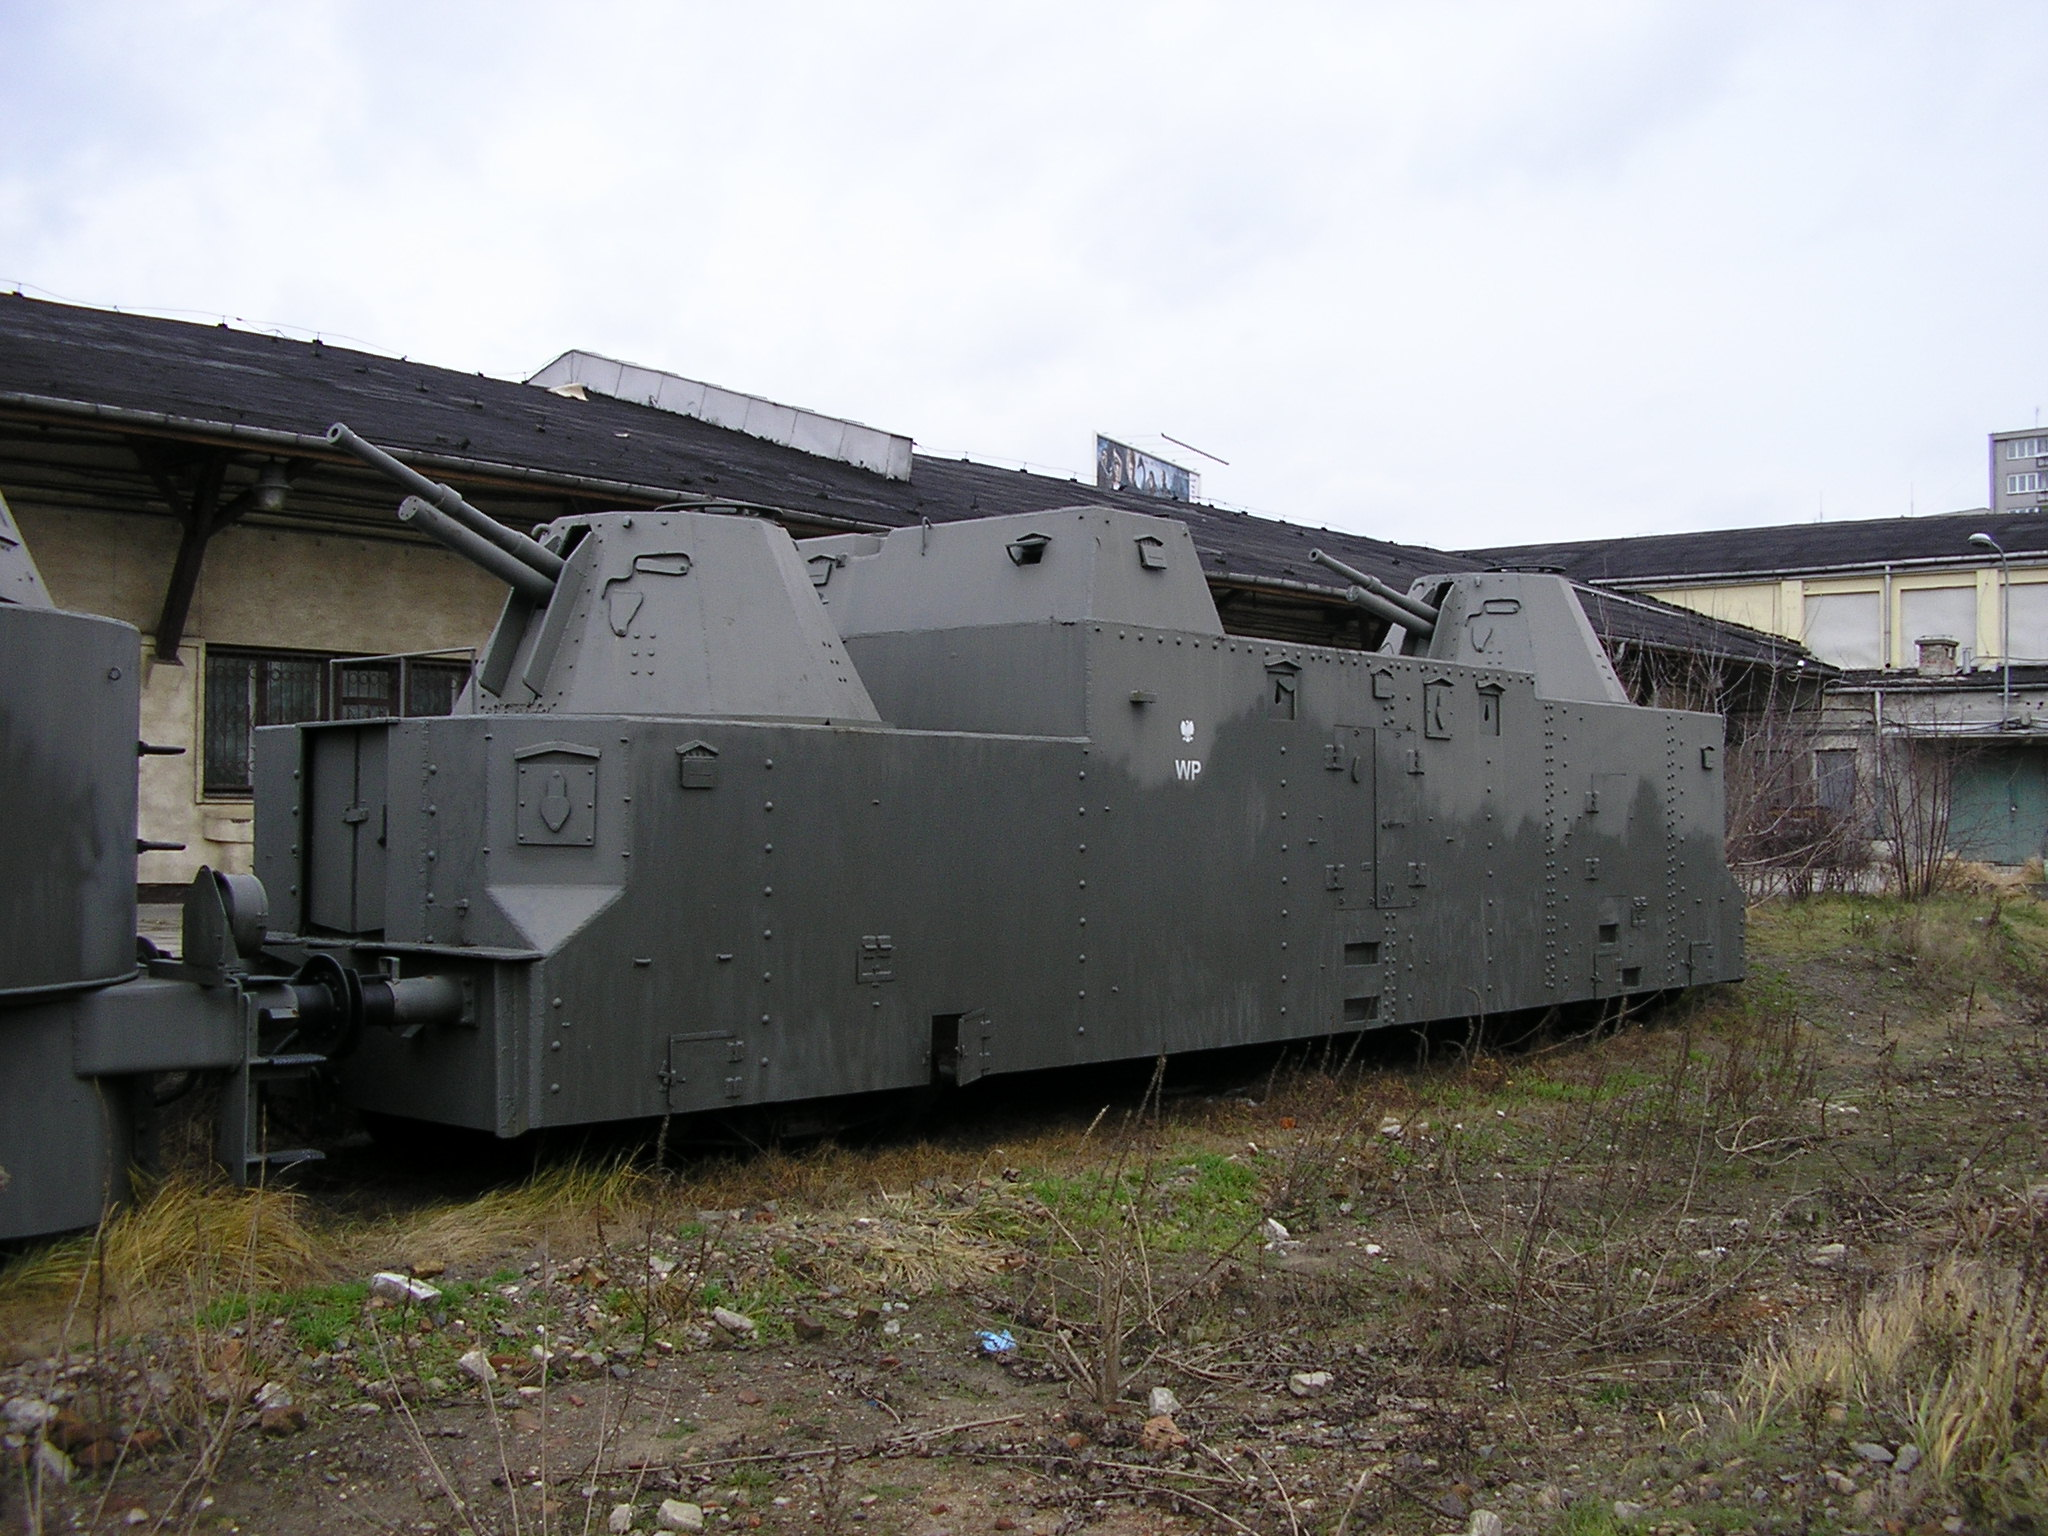 download marooned